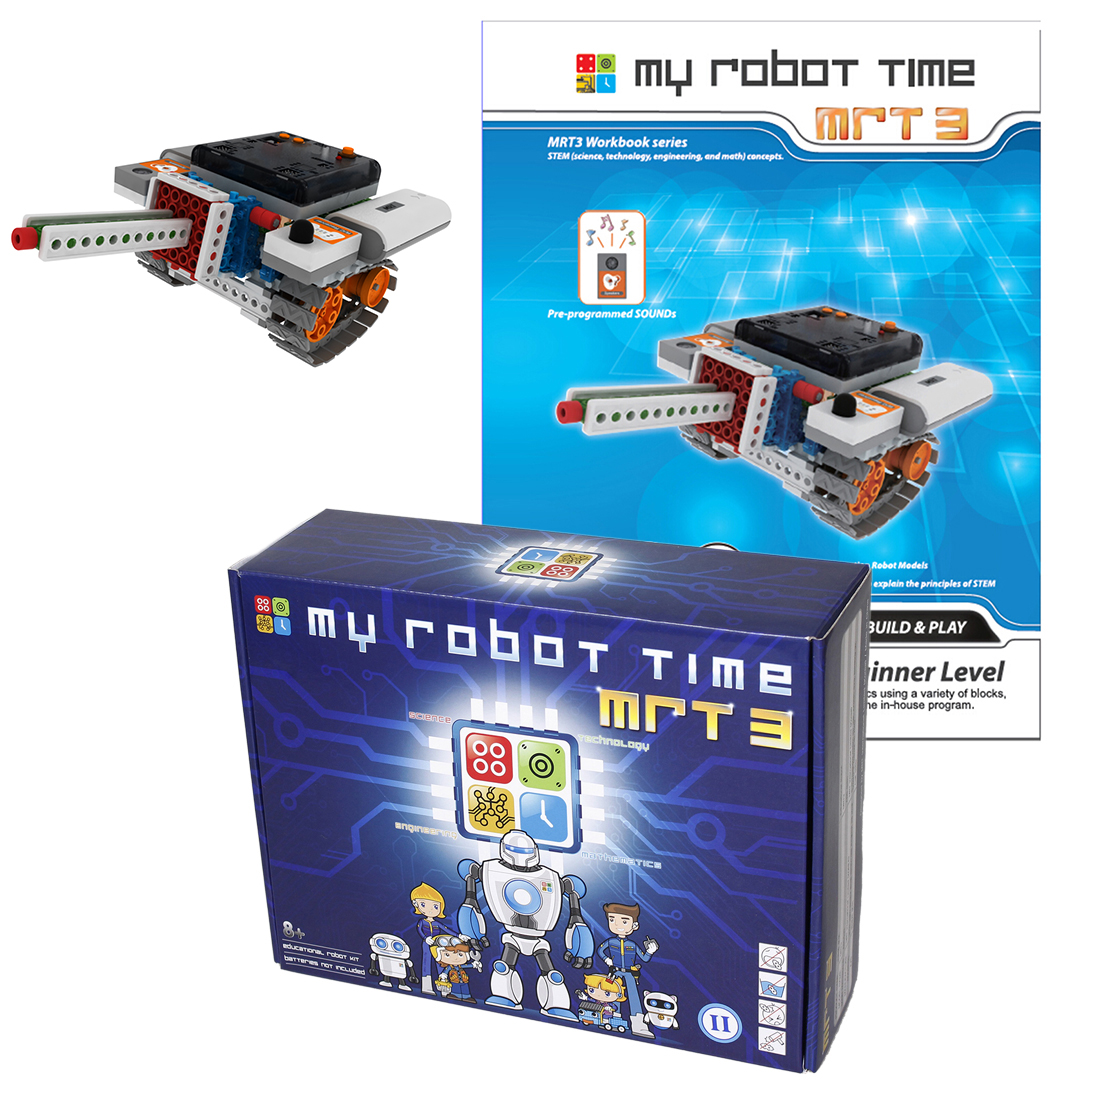 My Robot Time Programmable Multi-mode DIY Robots Building Block Assembly Robot Toy For Age 7+ Years Old (MRT 3-2 Beginner Level)